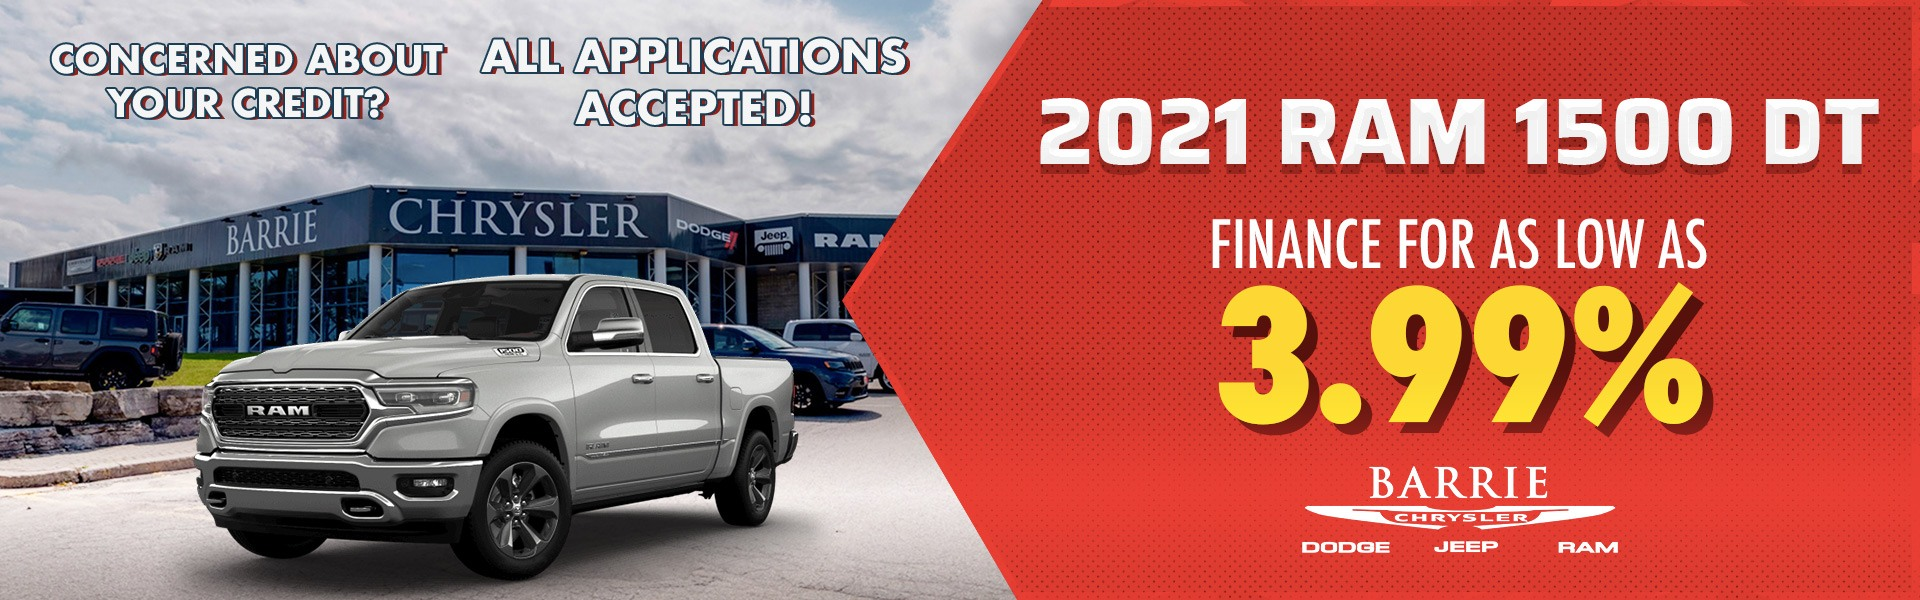 2021 RAM 1500 DT Finance For As Low As 3.99%